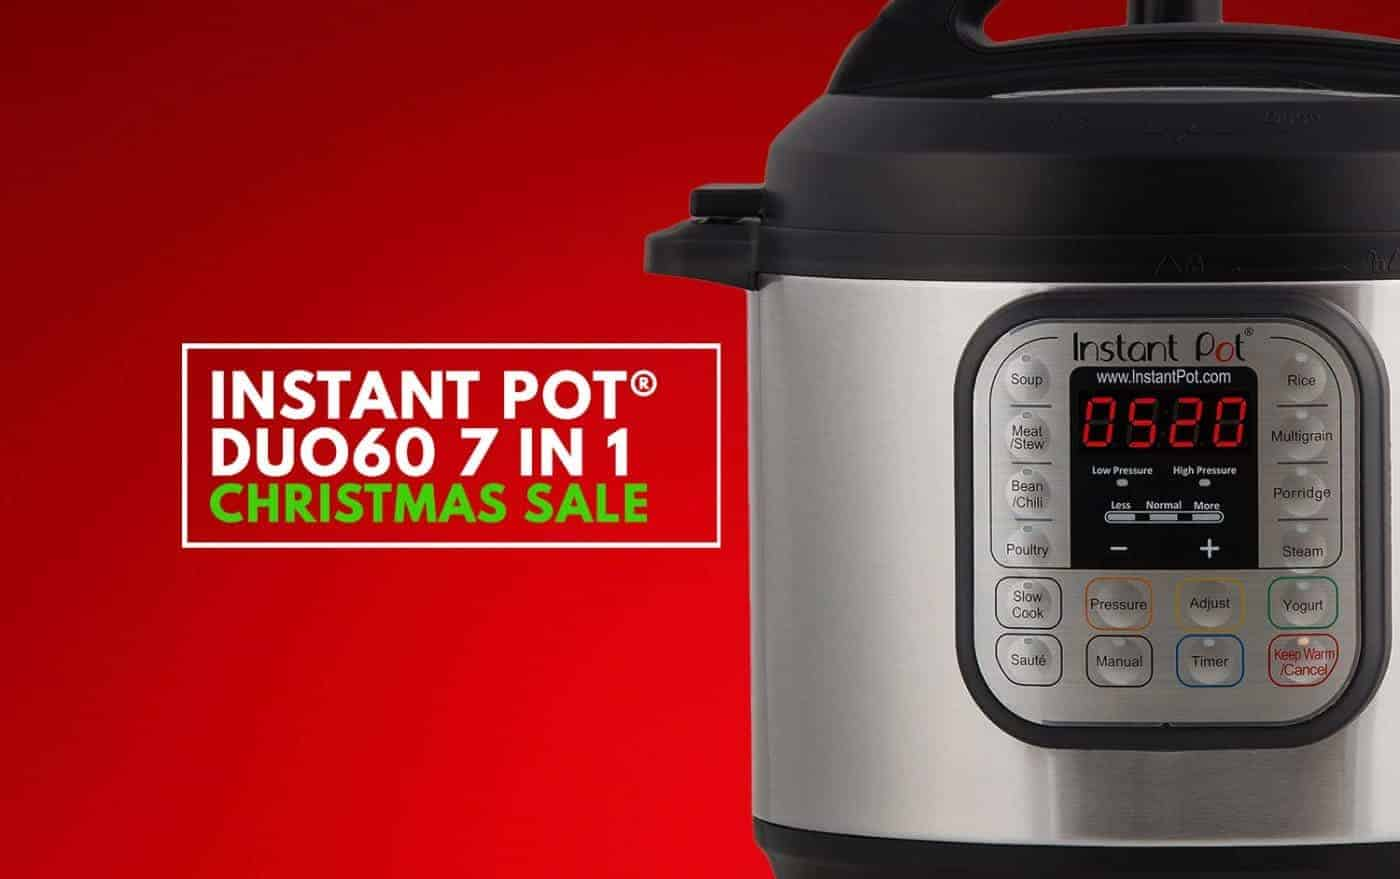 Instant Pot Christmas Deal: Now it's your chance to grab the deal on Instant Pot DUO60 7-in-1 Electric Pressure Cooker!